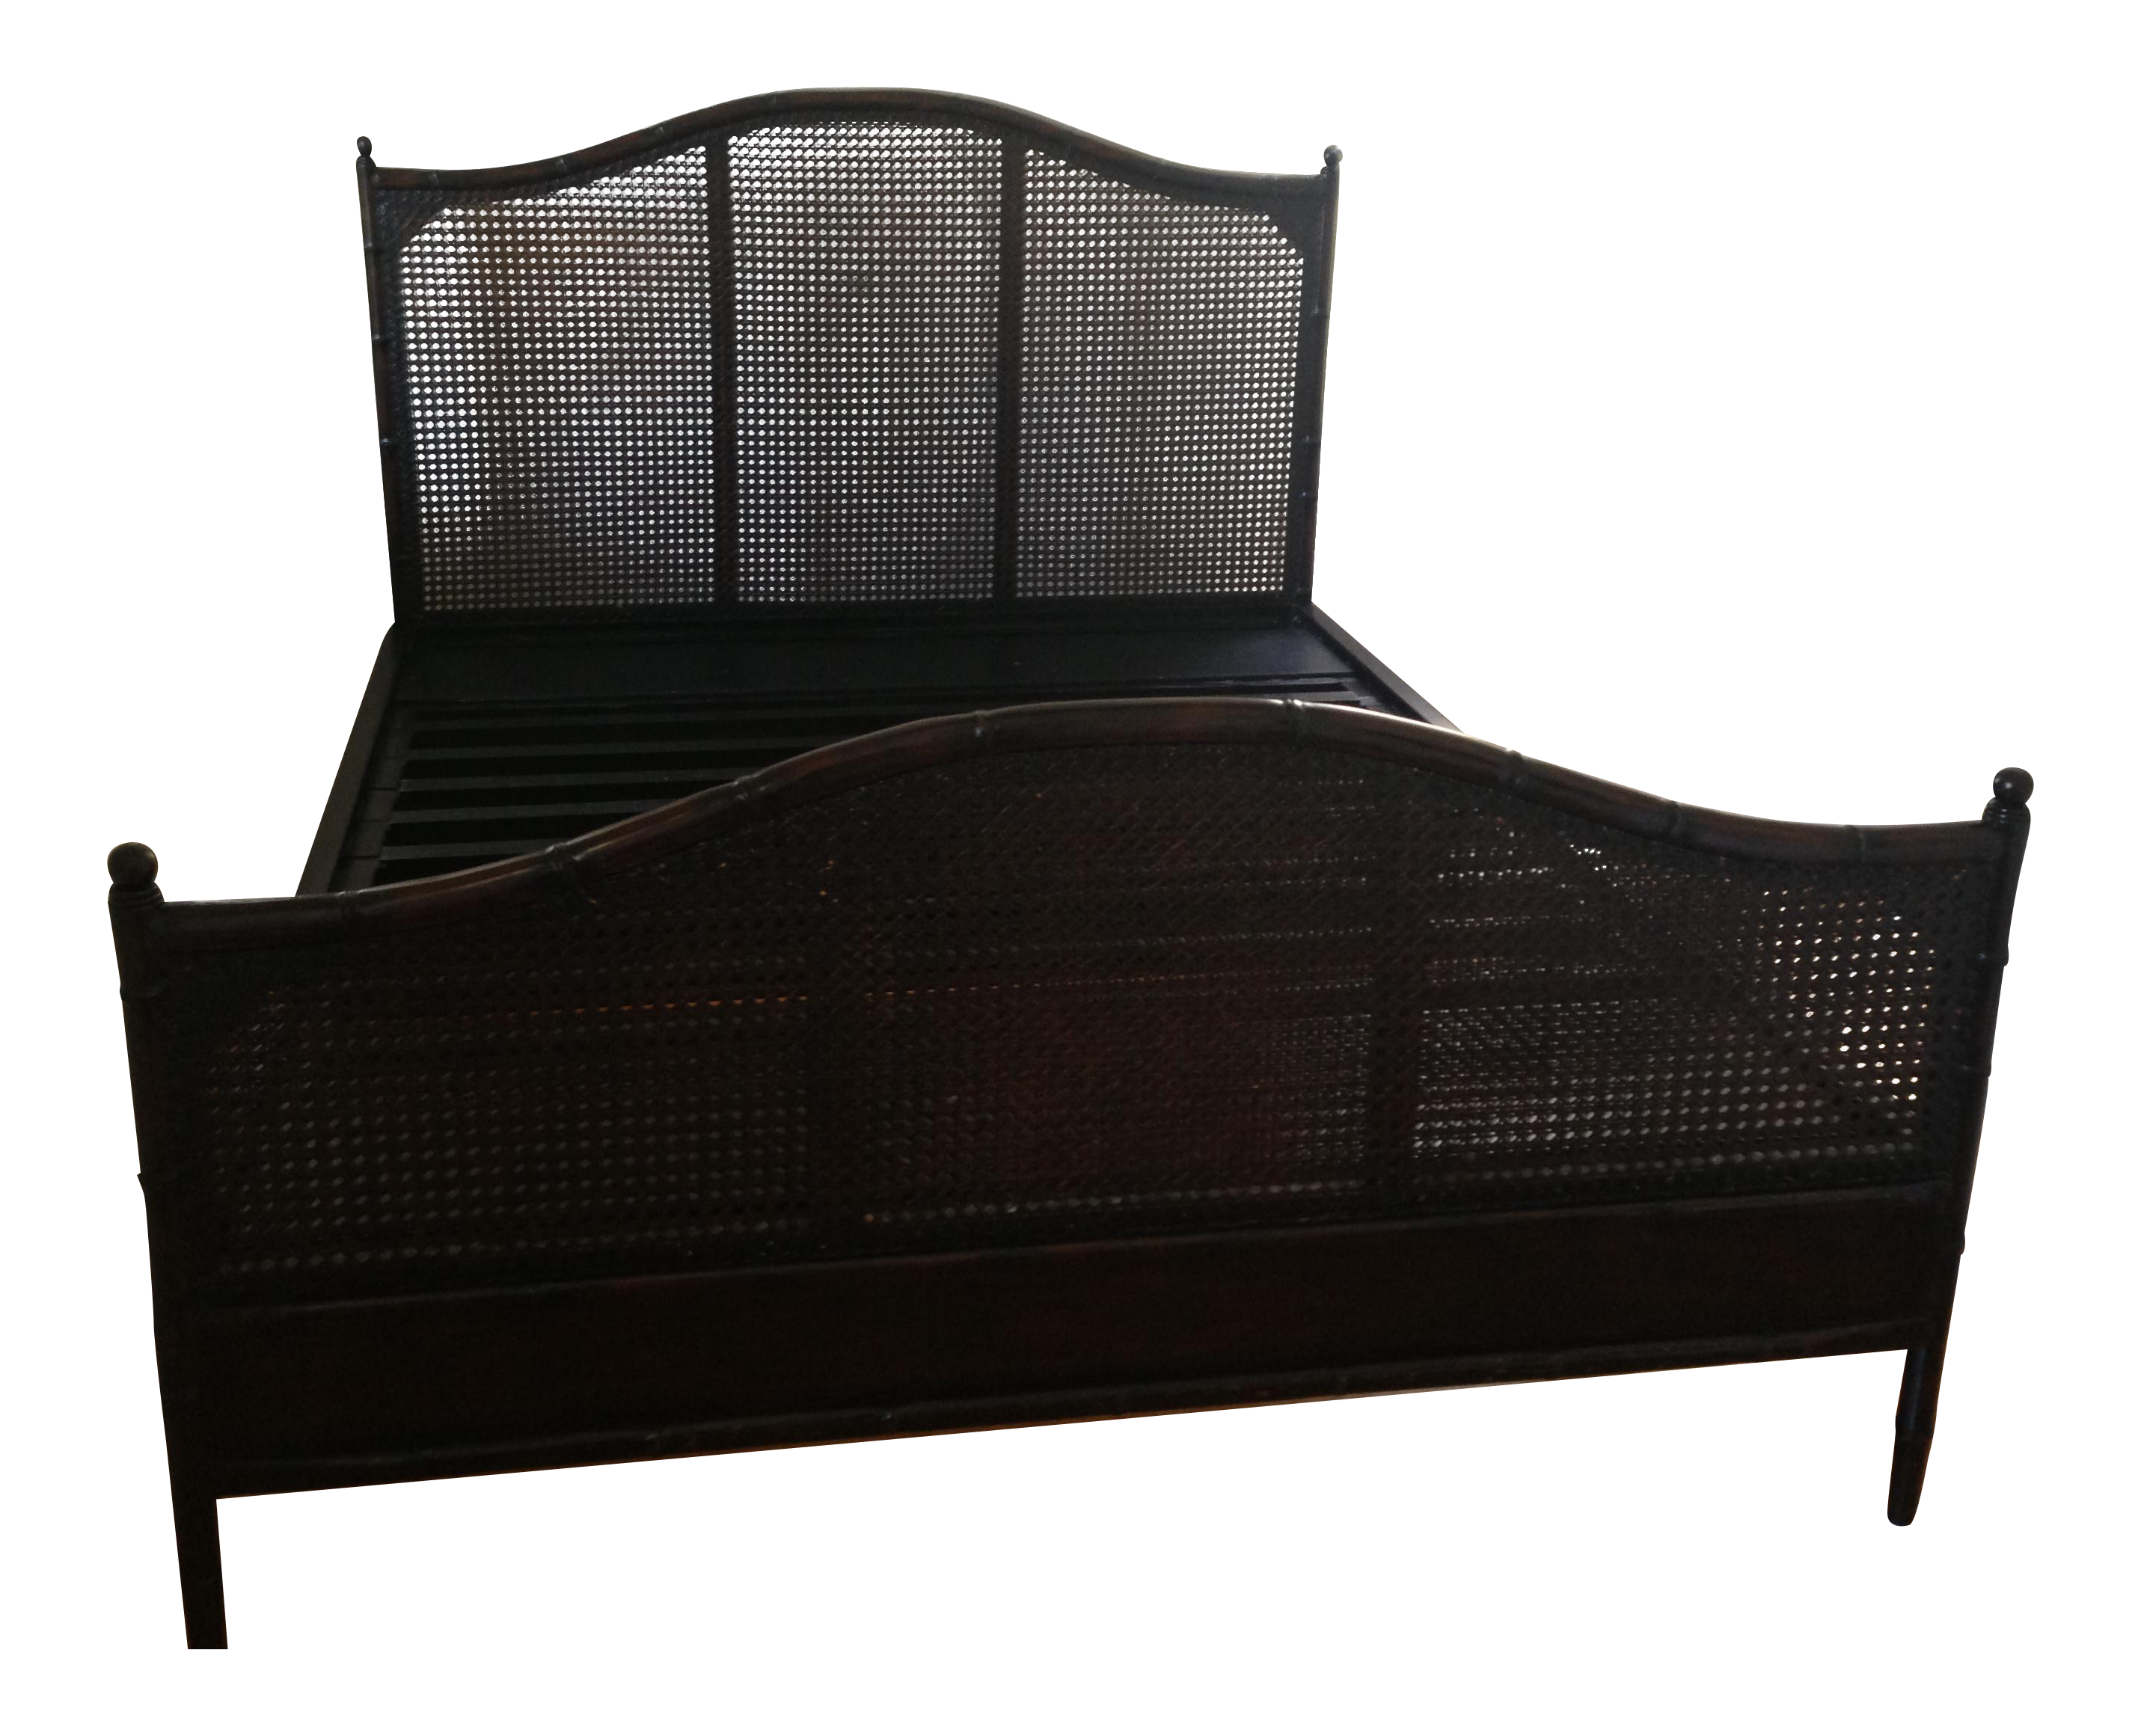 Dark Wood Sleigh Queen Bed Frame amp Rattan Headboard Chairish : dark wood sleigh queen bed frame and rattan headboard 9152 from www.chairish.com size 2862 x 2321 png 3495kB